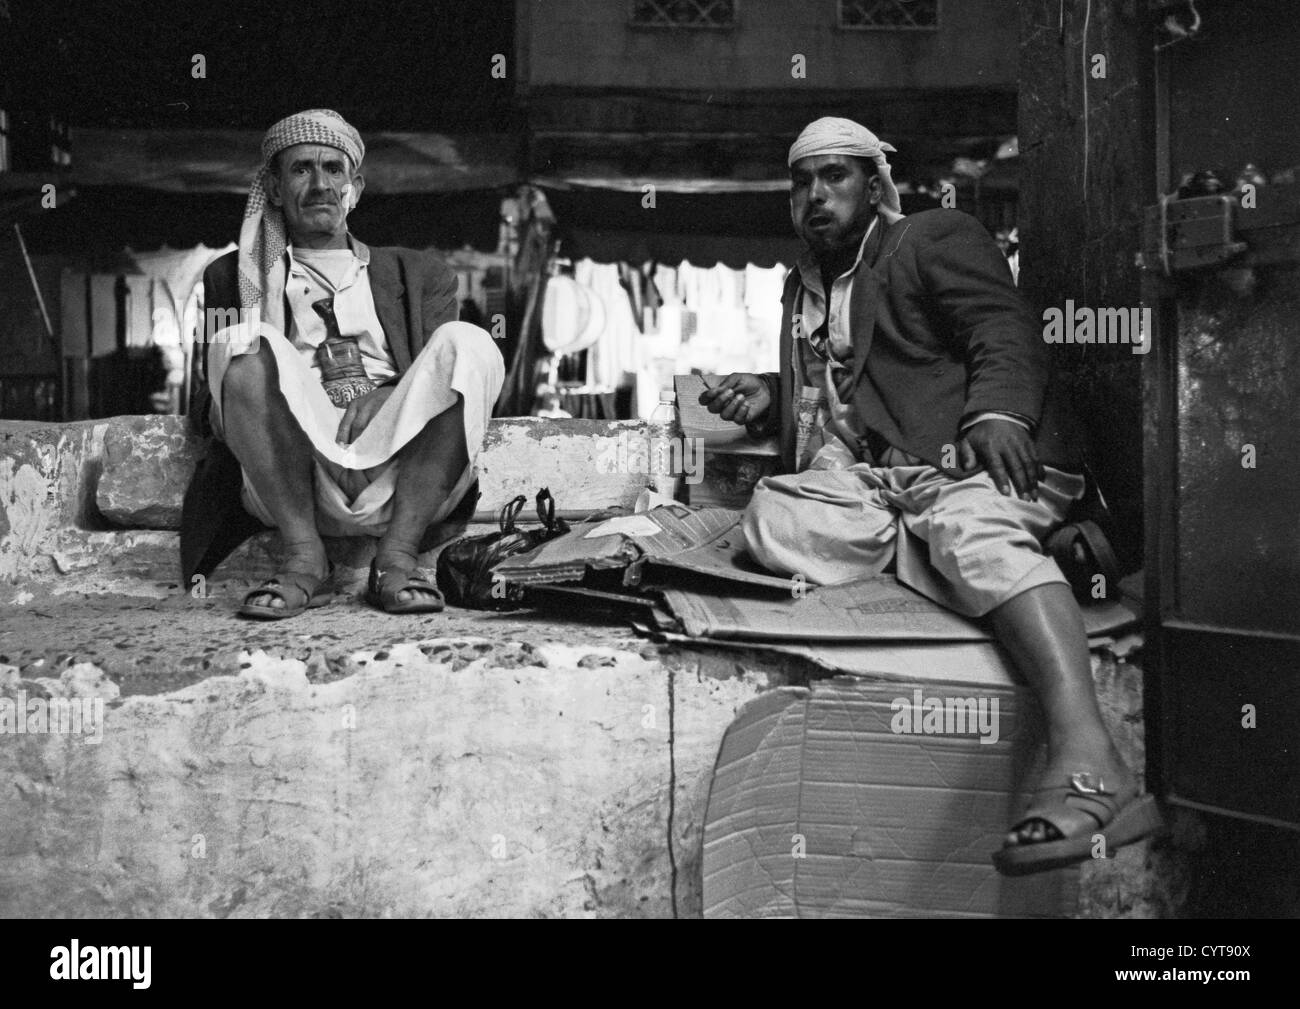 Two Men Chewing Qat While Relaxing, Black And White, Sanaa, Yemen - Stock Image